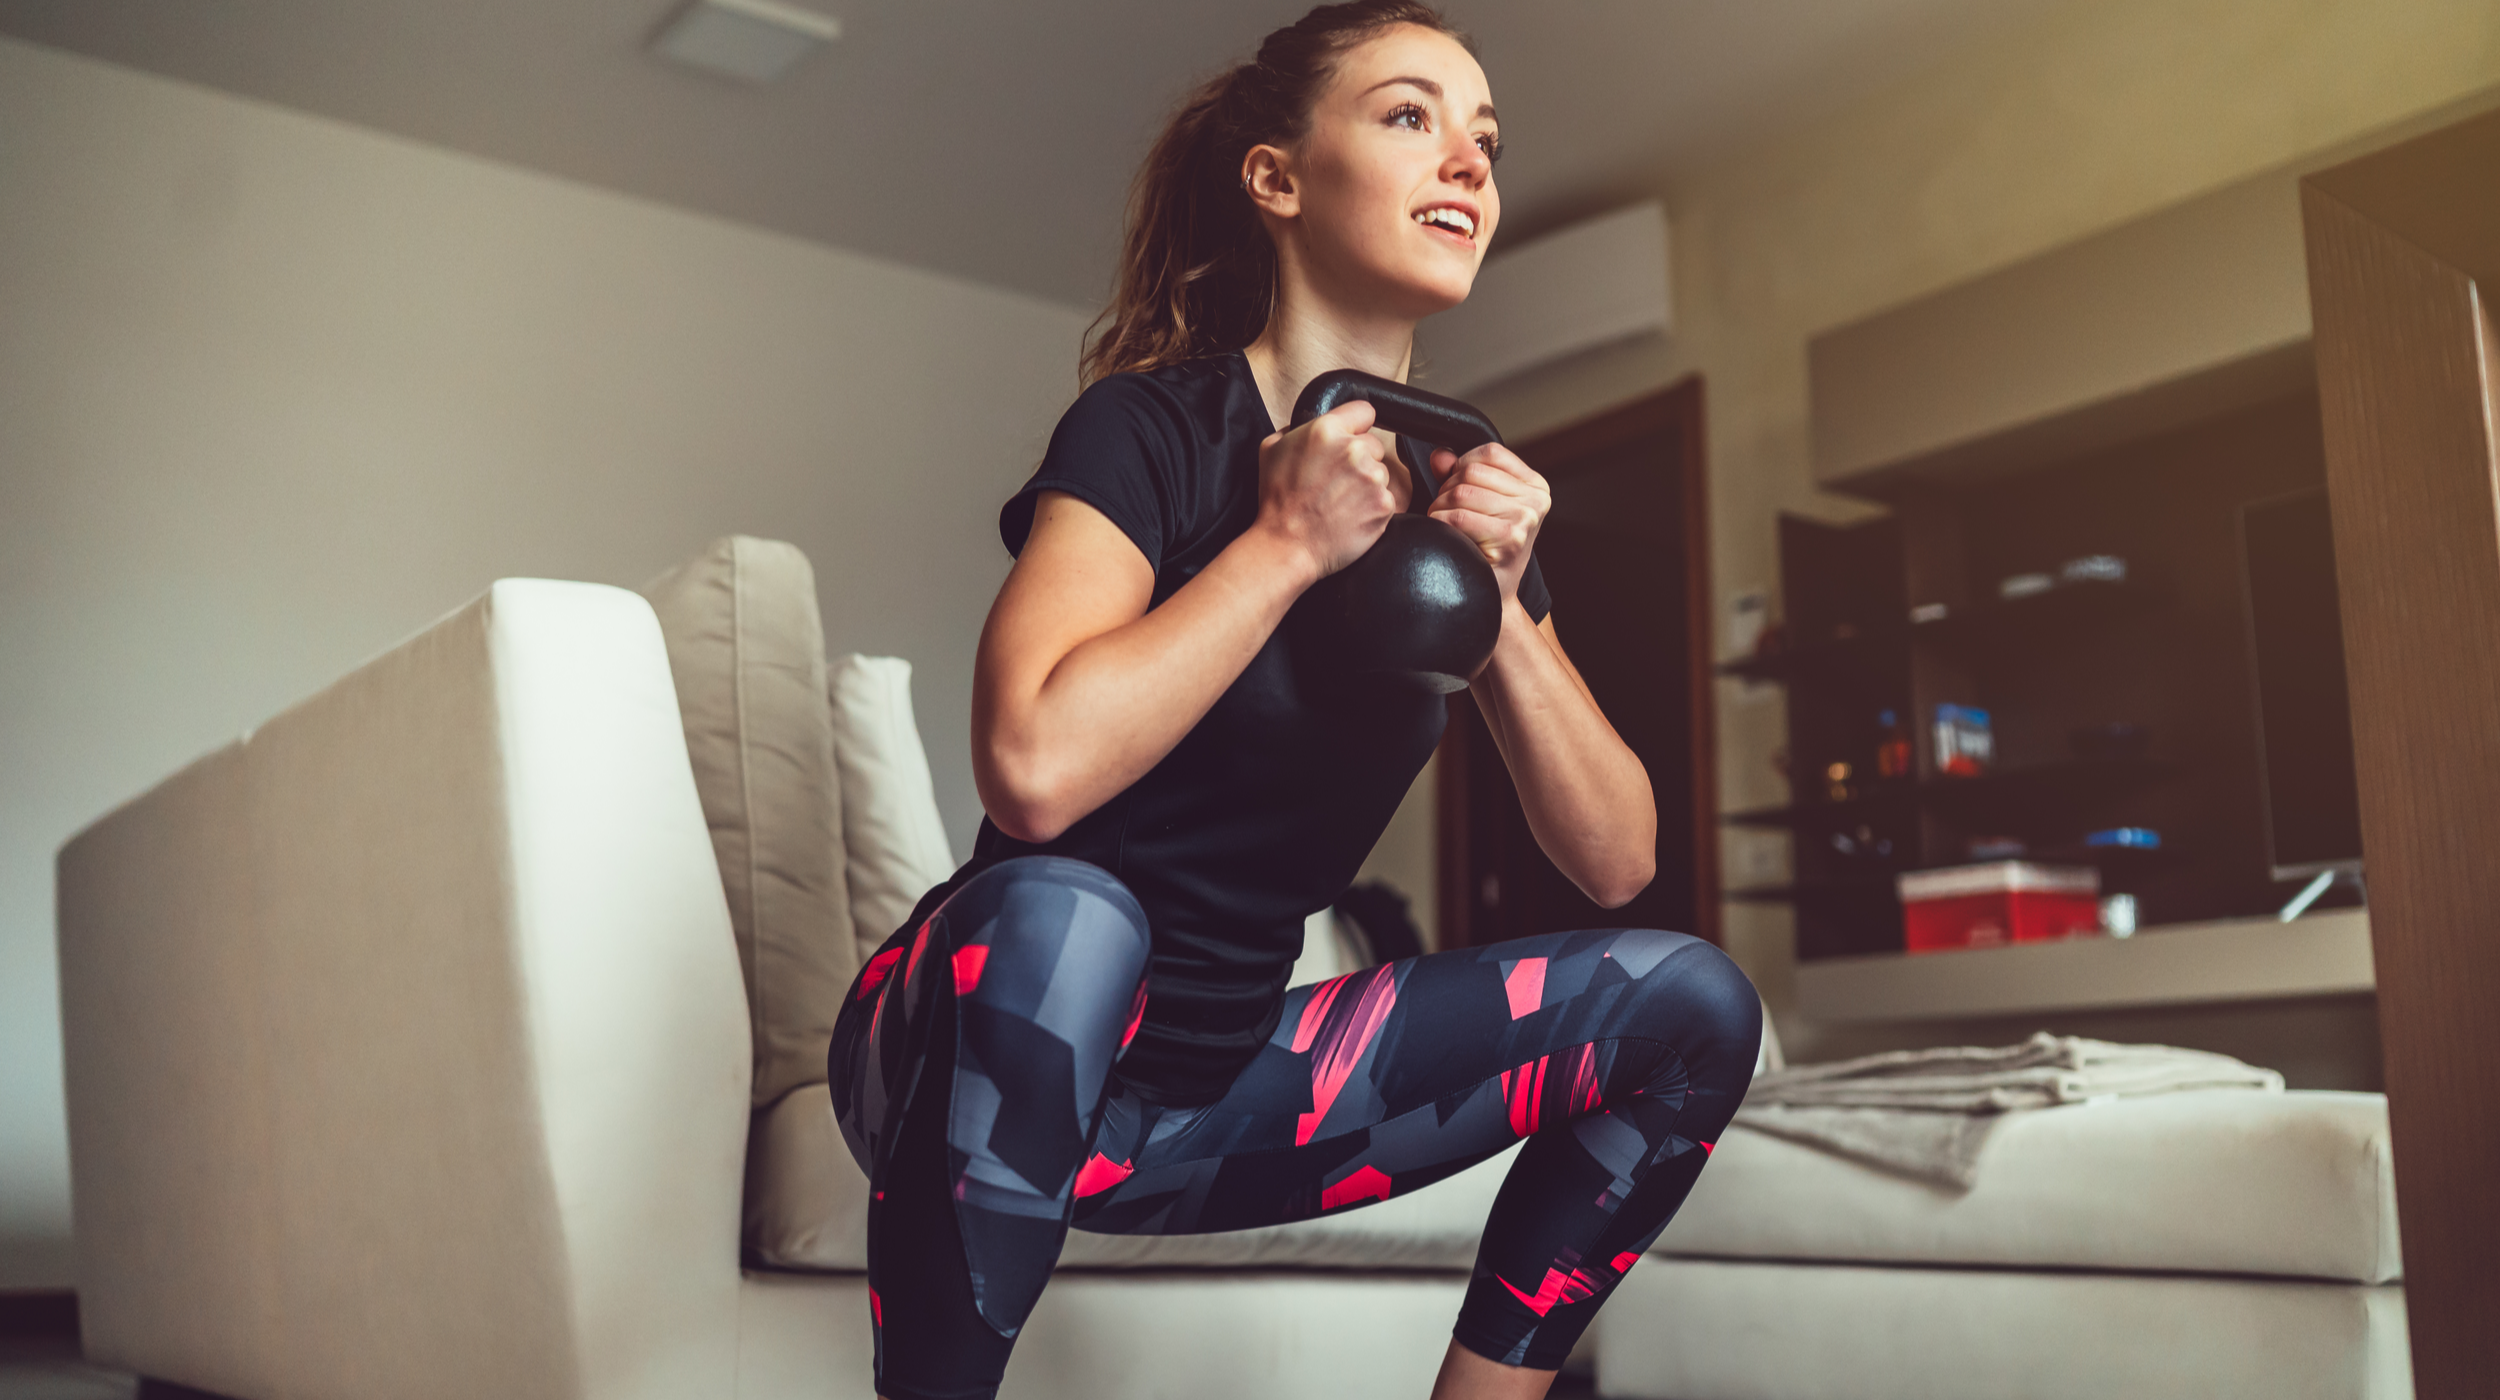 How Can I Stay on my Weightlifting Routine if I Can't Go to a Gym?